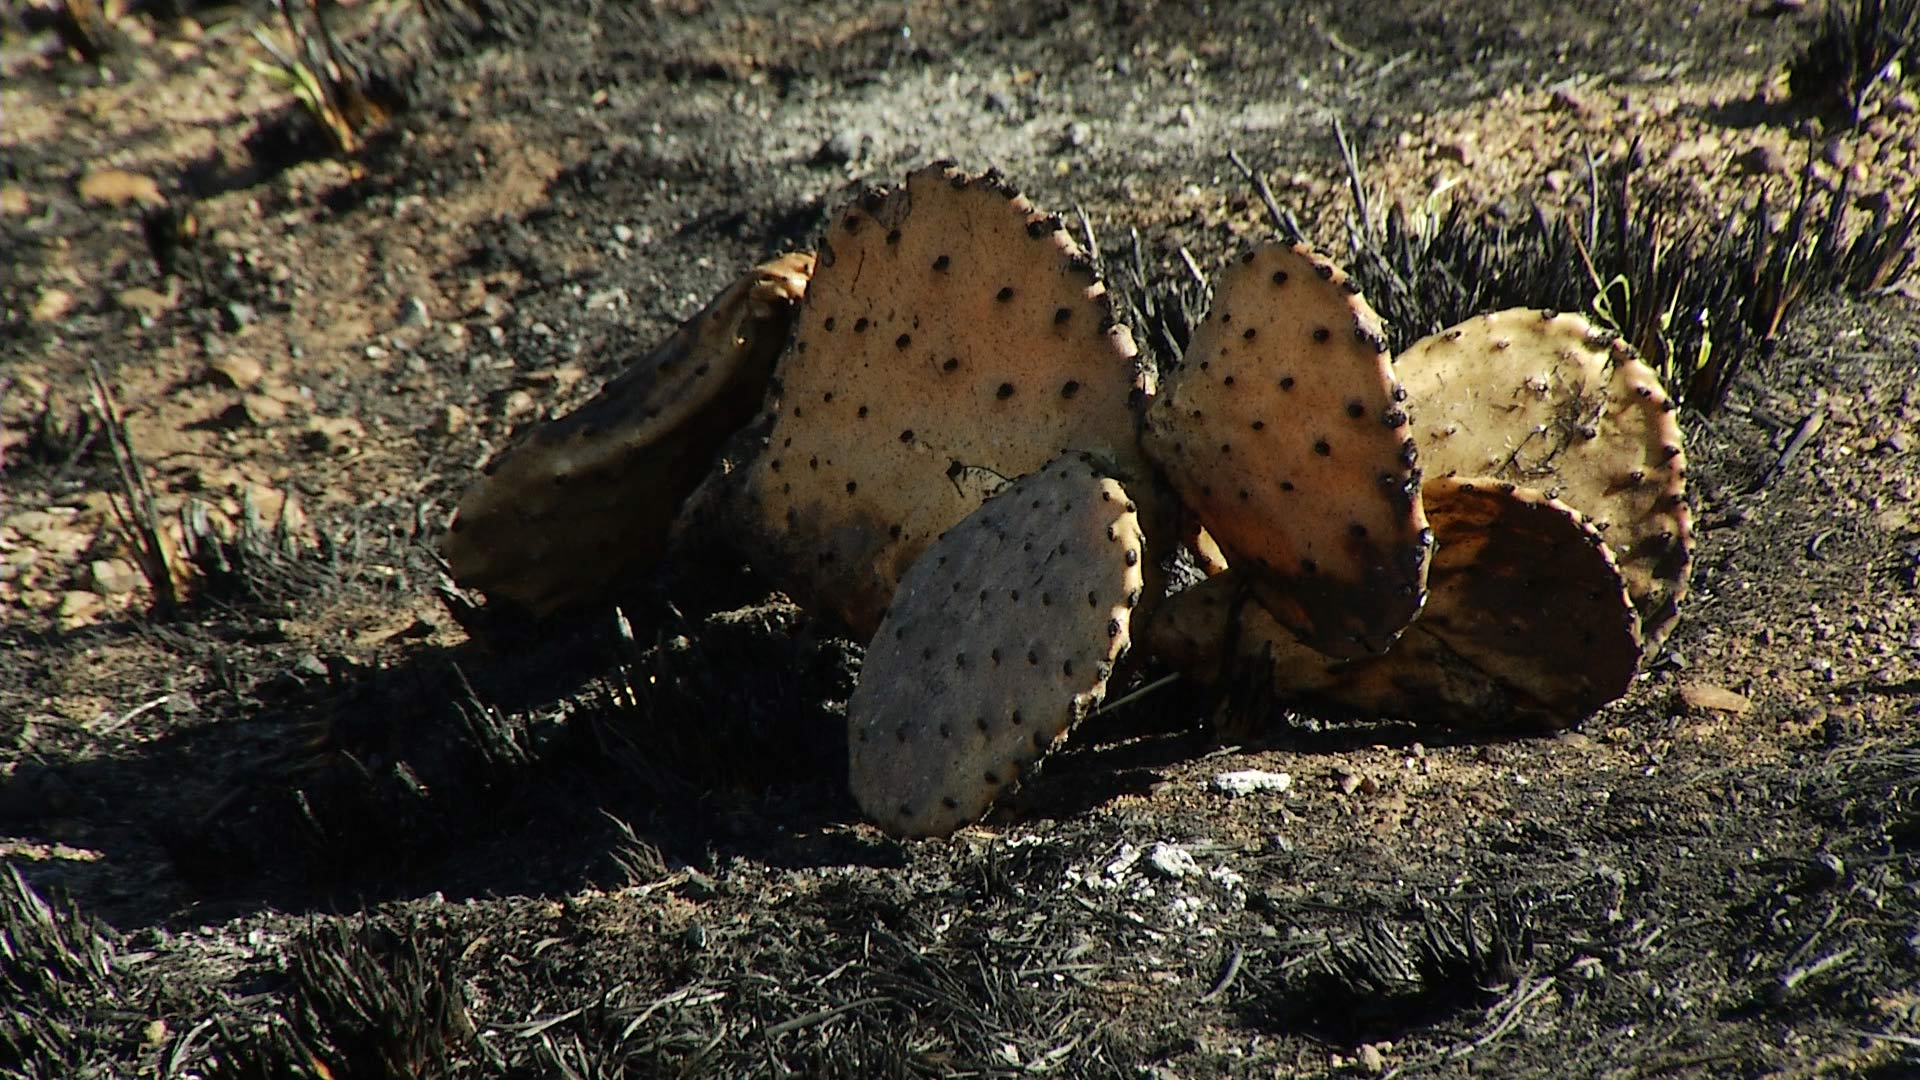 A prickly pear cactus charred by the Sawmill Fire in Pima County in April 2017.